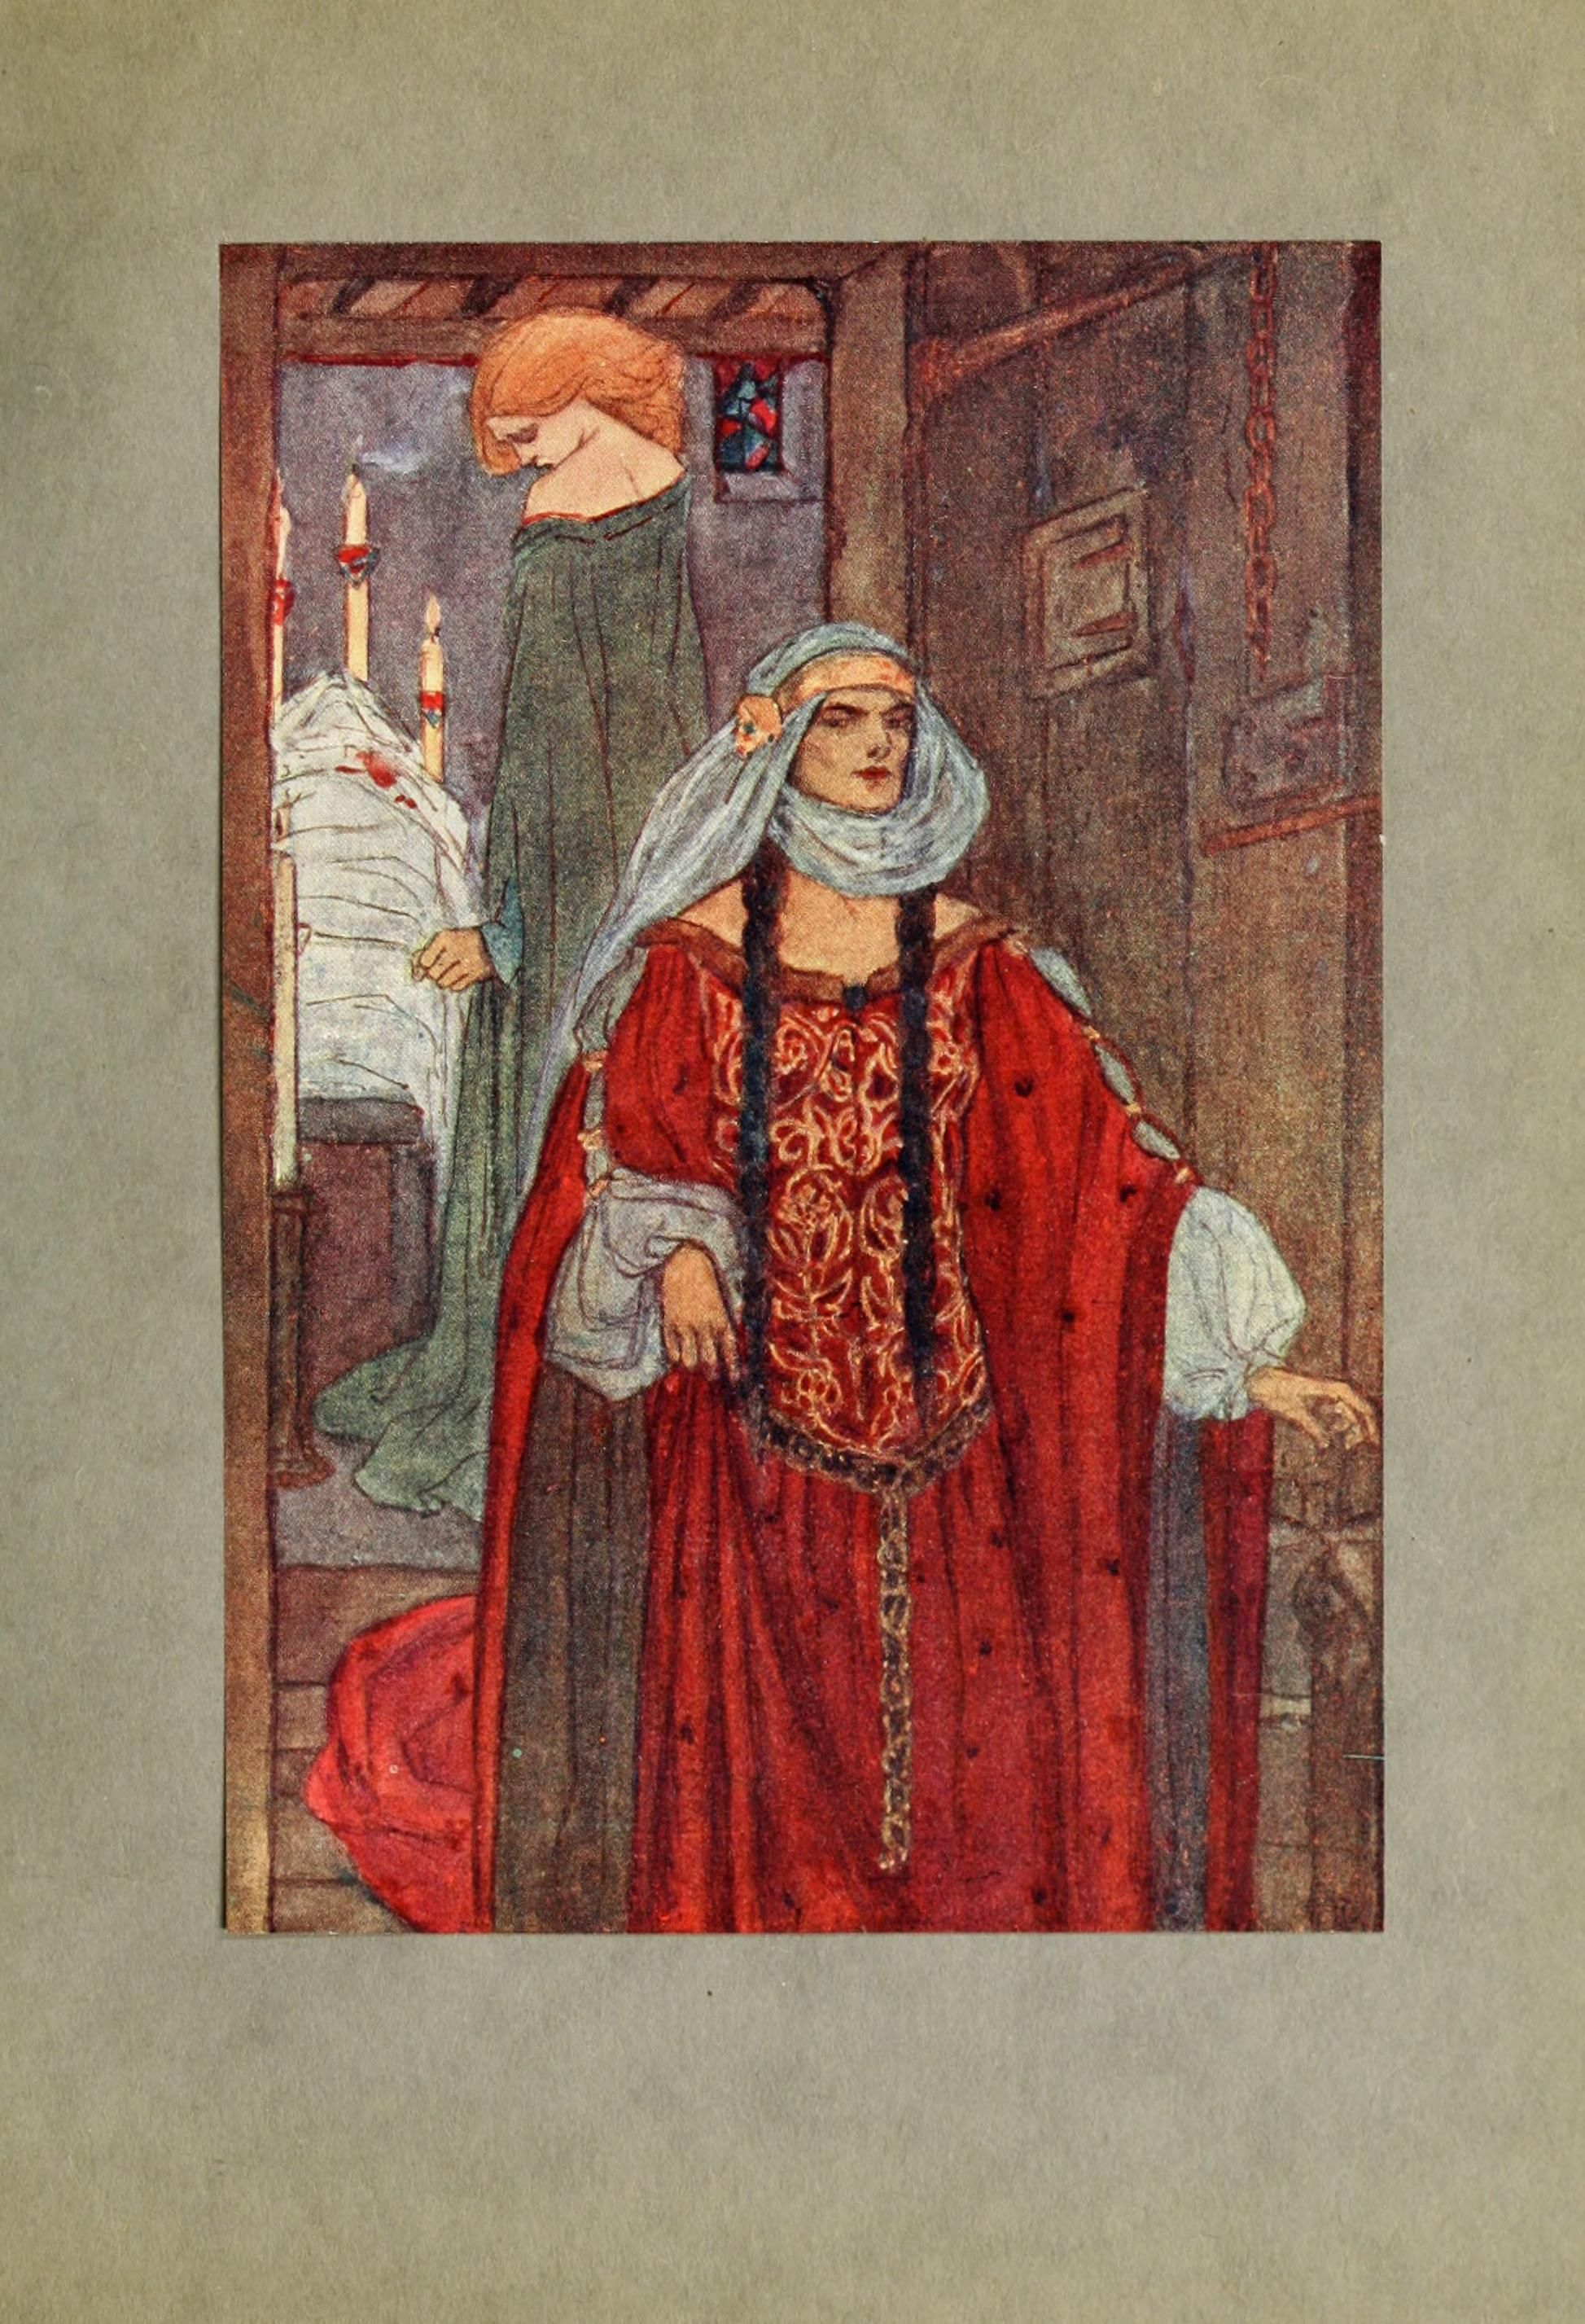 sister maude by christina rossetti essay Need writing christina rossetti essay use our essay writing services or get access to database of 39 free essays samples about christina rossetti signup now.